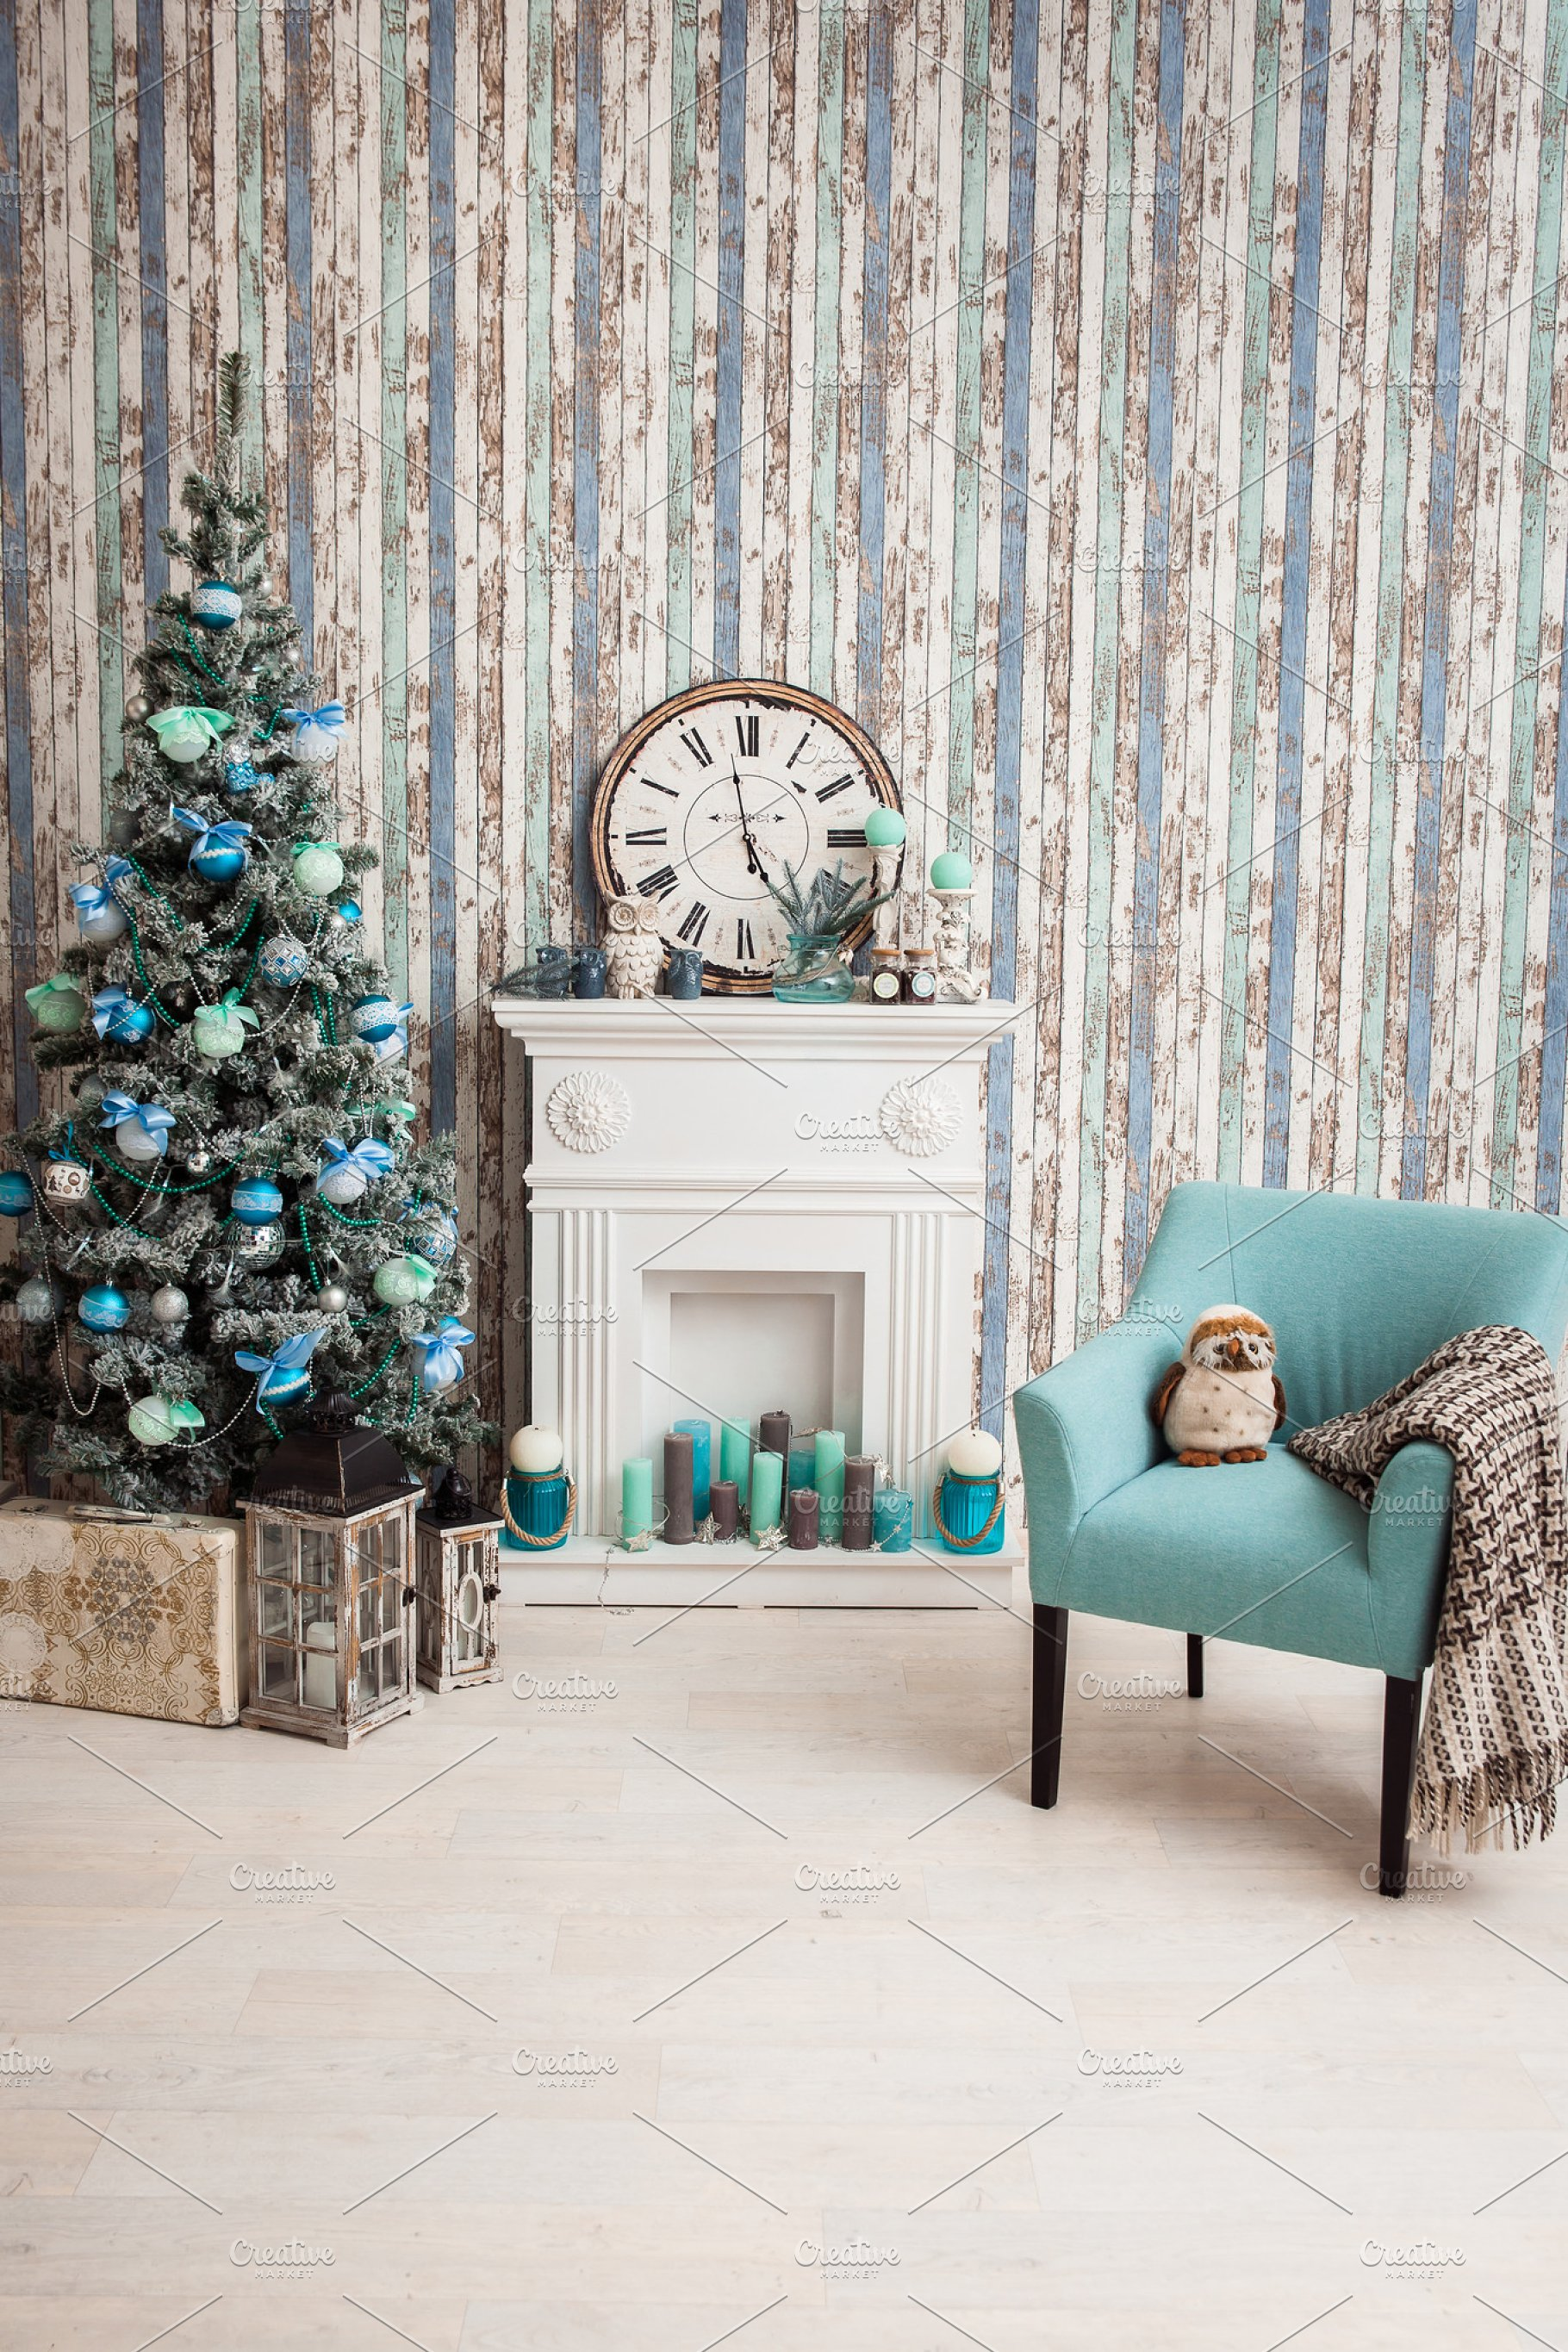 Christmas Tree In Living Room With Fireplace Armchair And Wallpaper